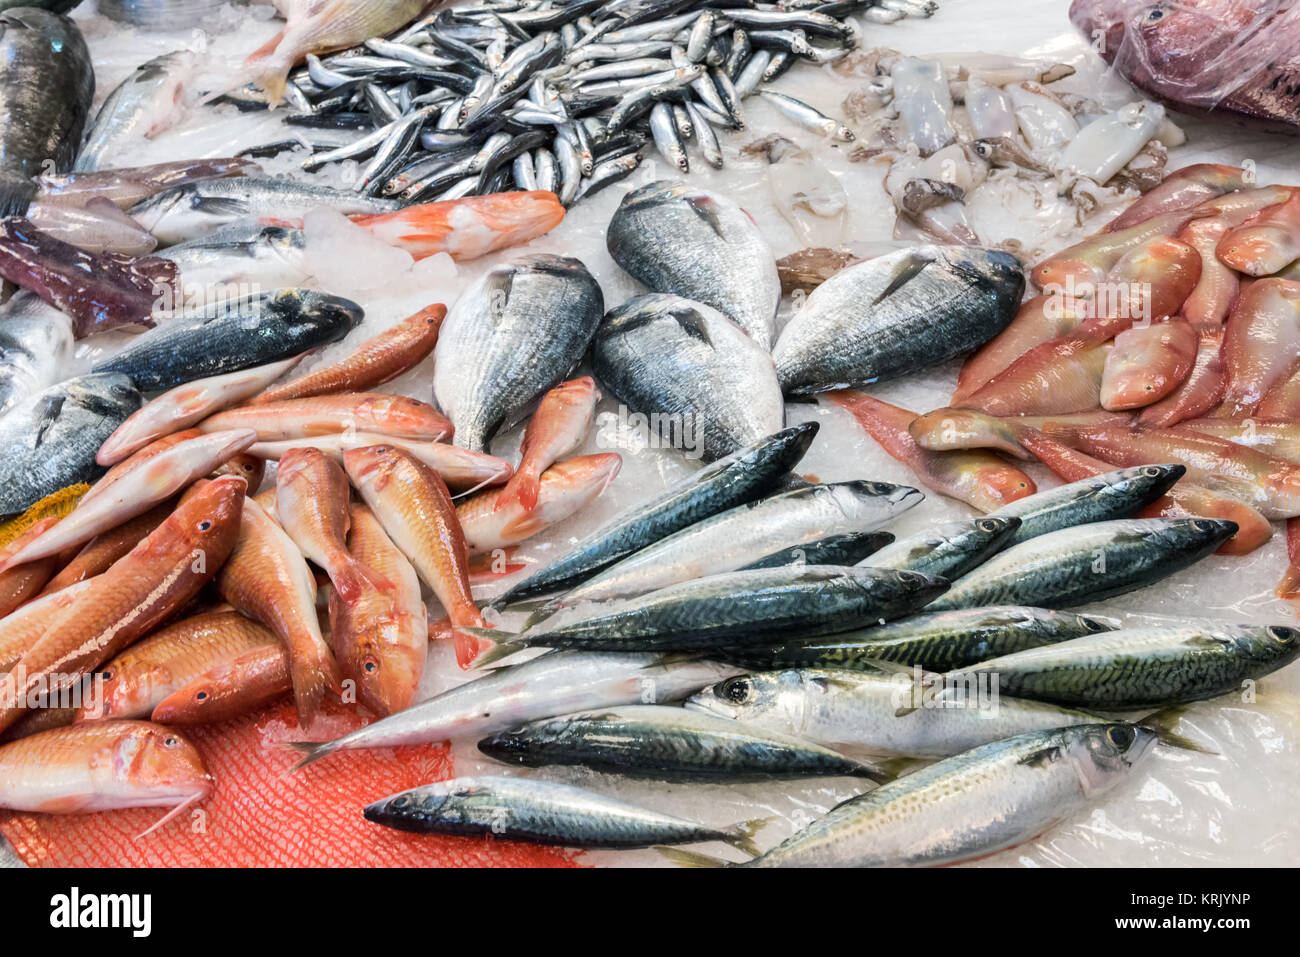 large selection of fish at a market in palermo,sicily Stock Photo